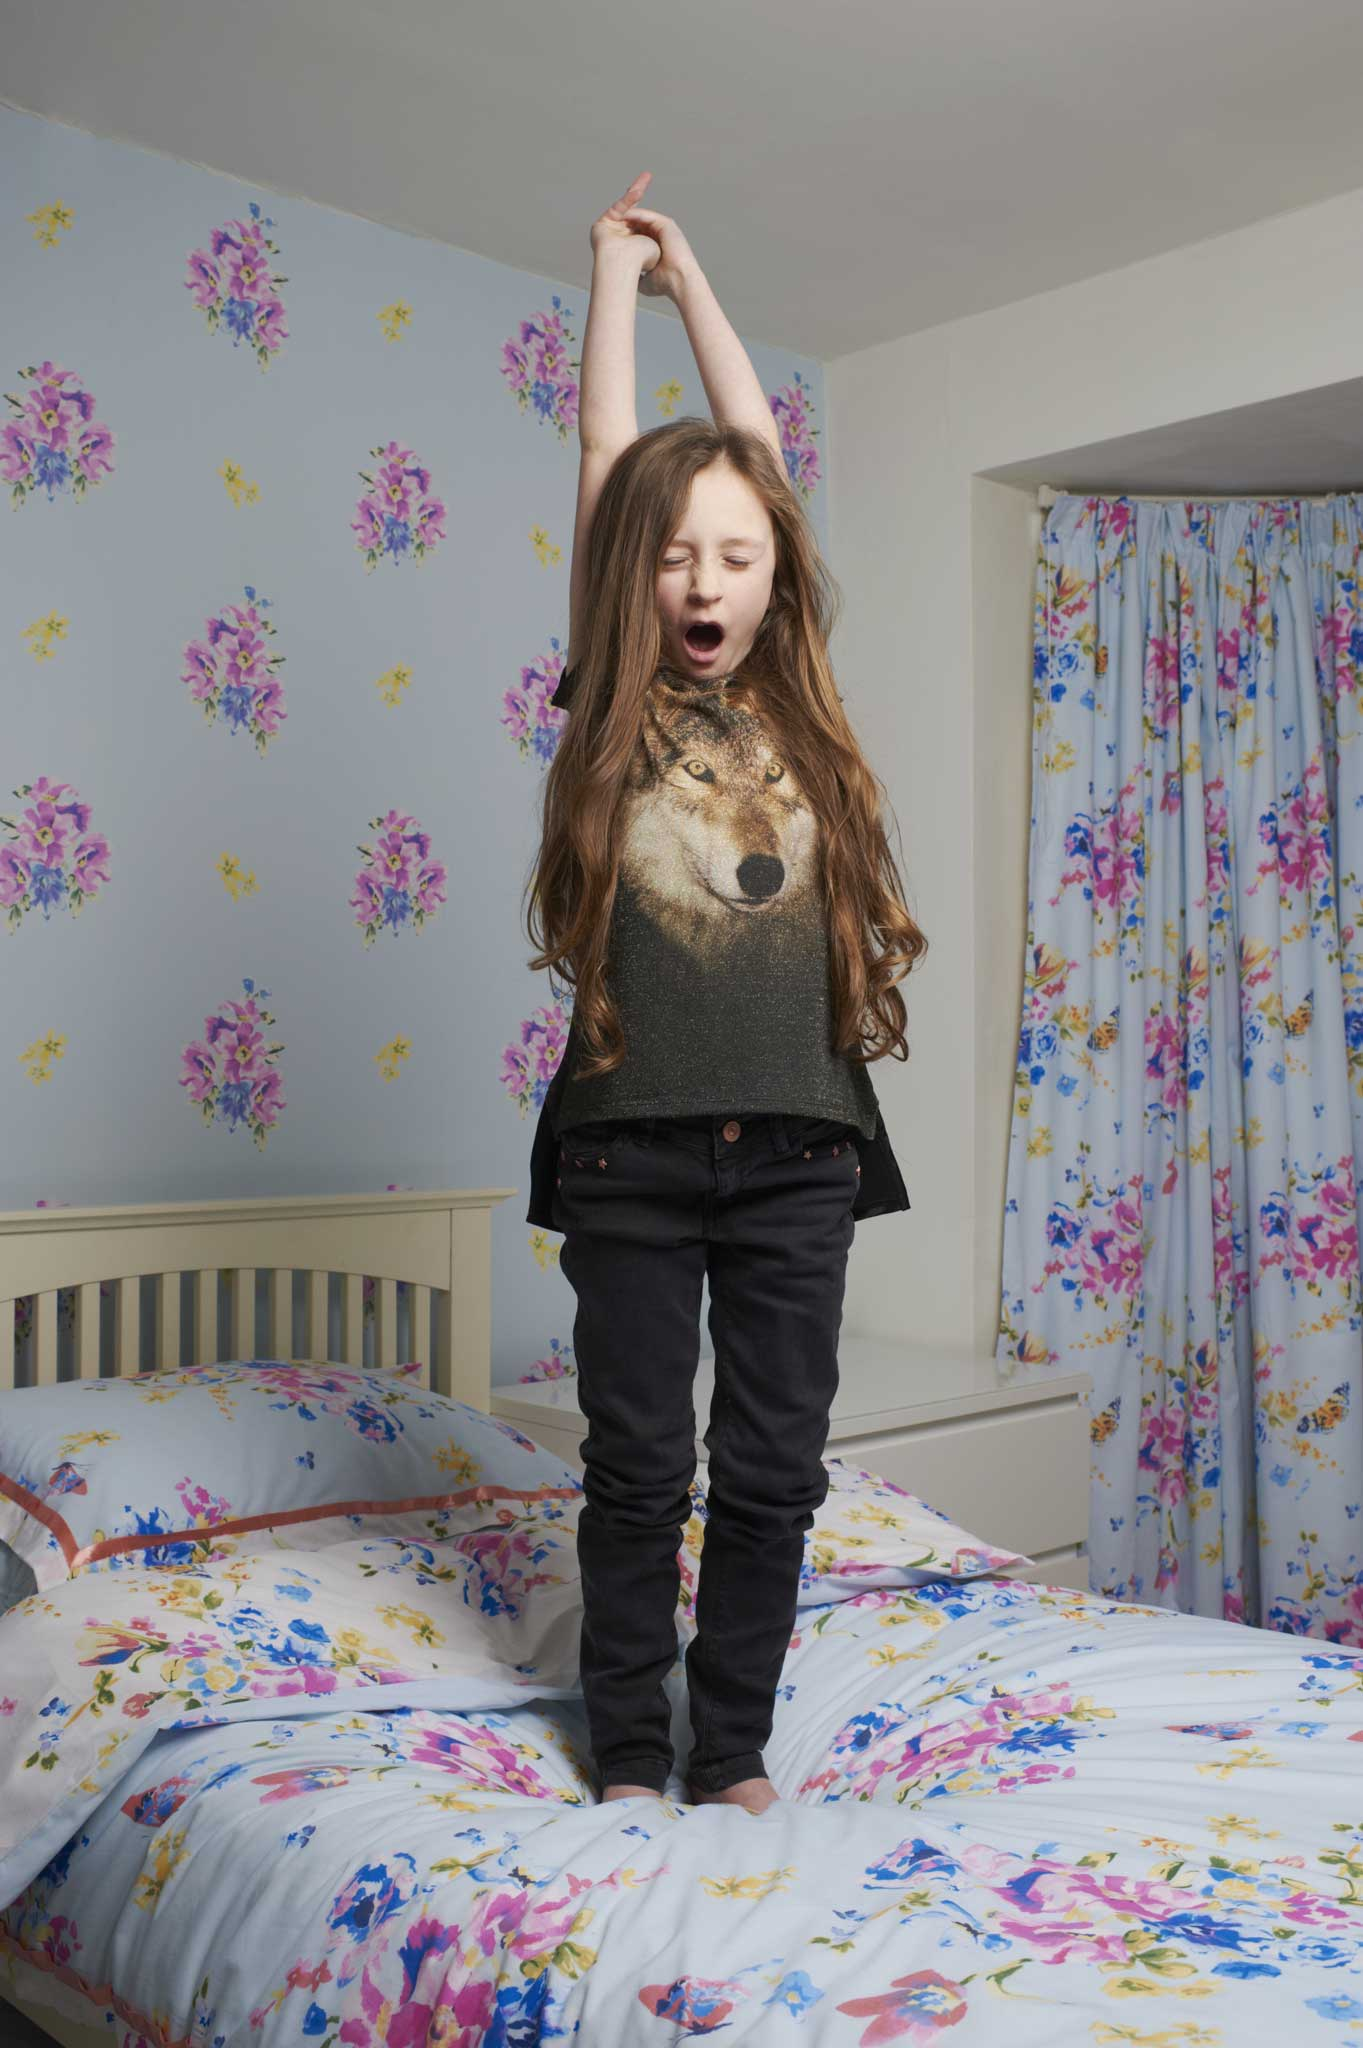 Are the kids alright? A new generation of child stars on